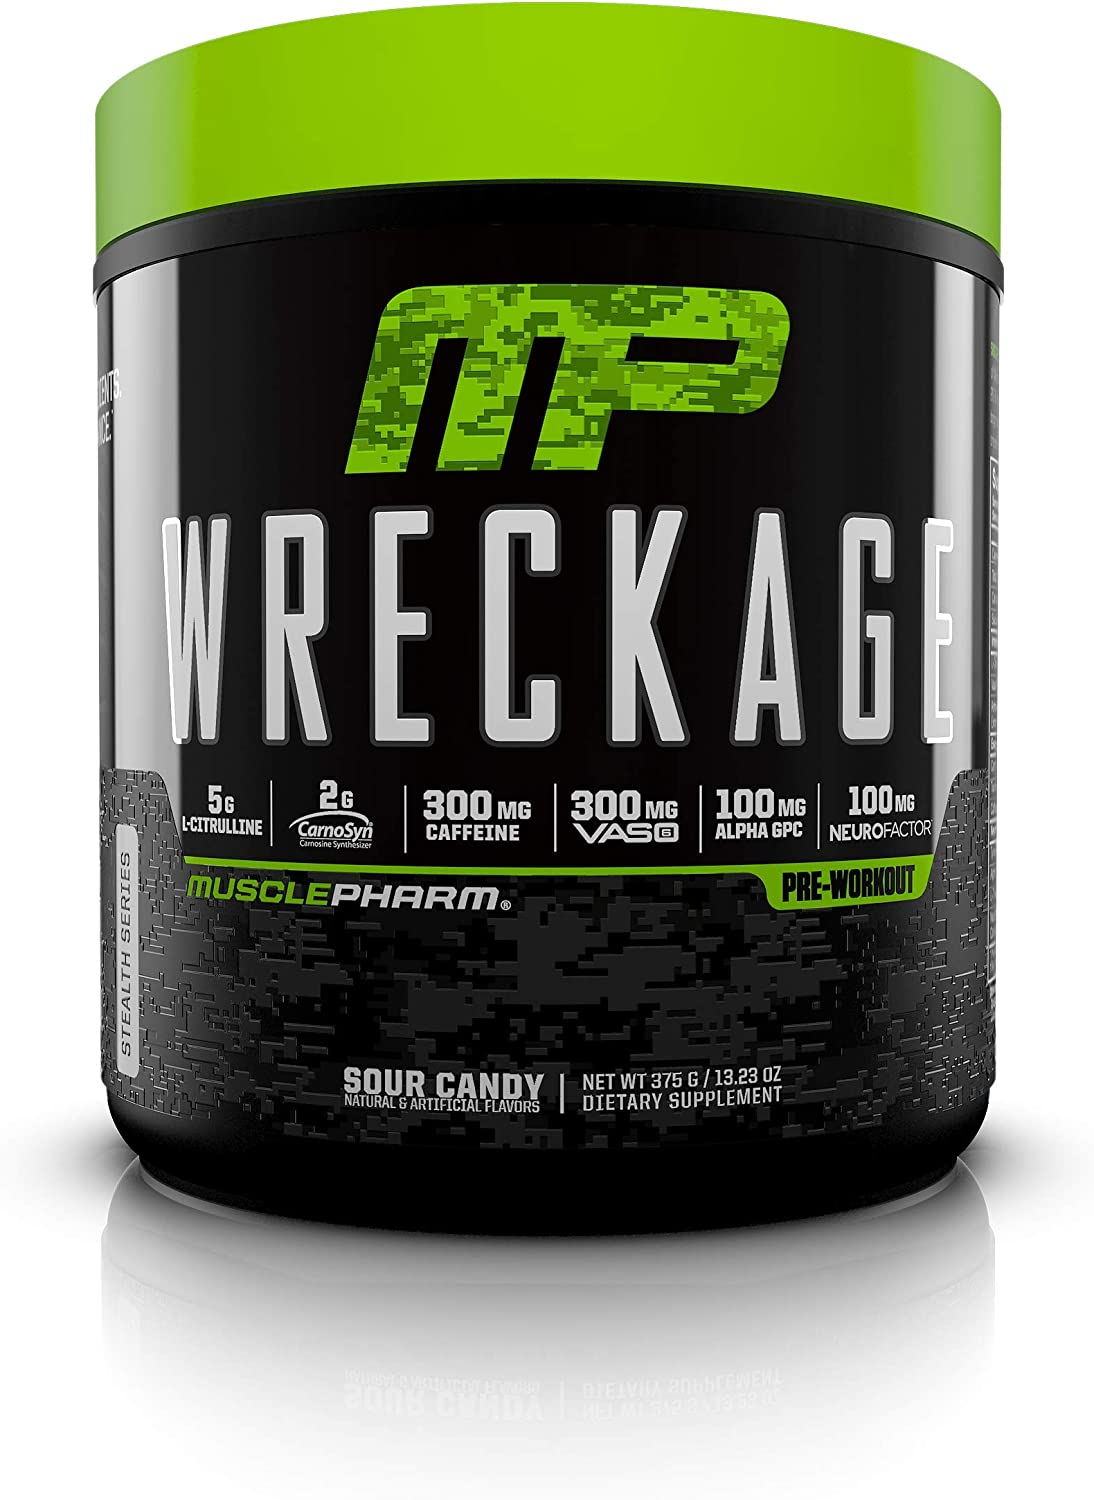 MusclePharm Wreckage Pre-Workout Powder, Superior Focus and Sustained Pump, Sour Candy, 25 Servings